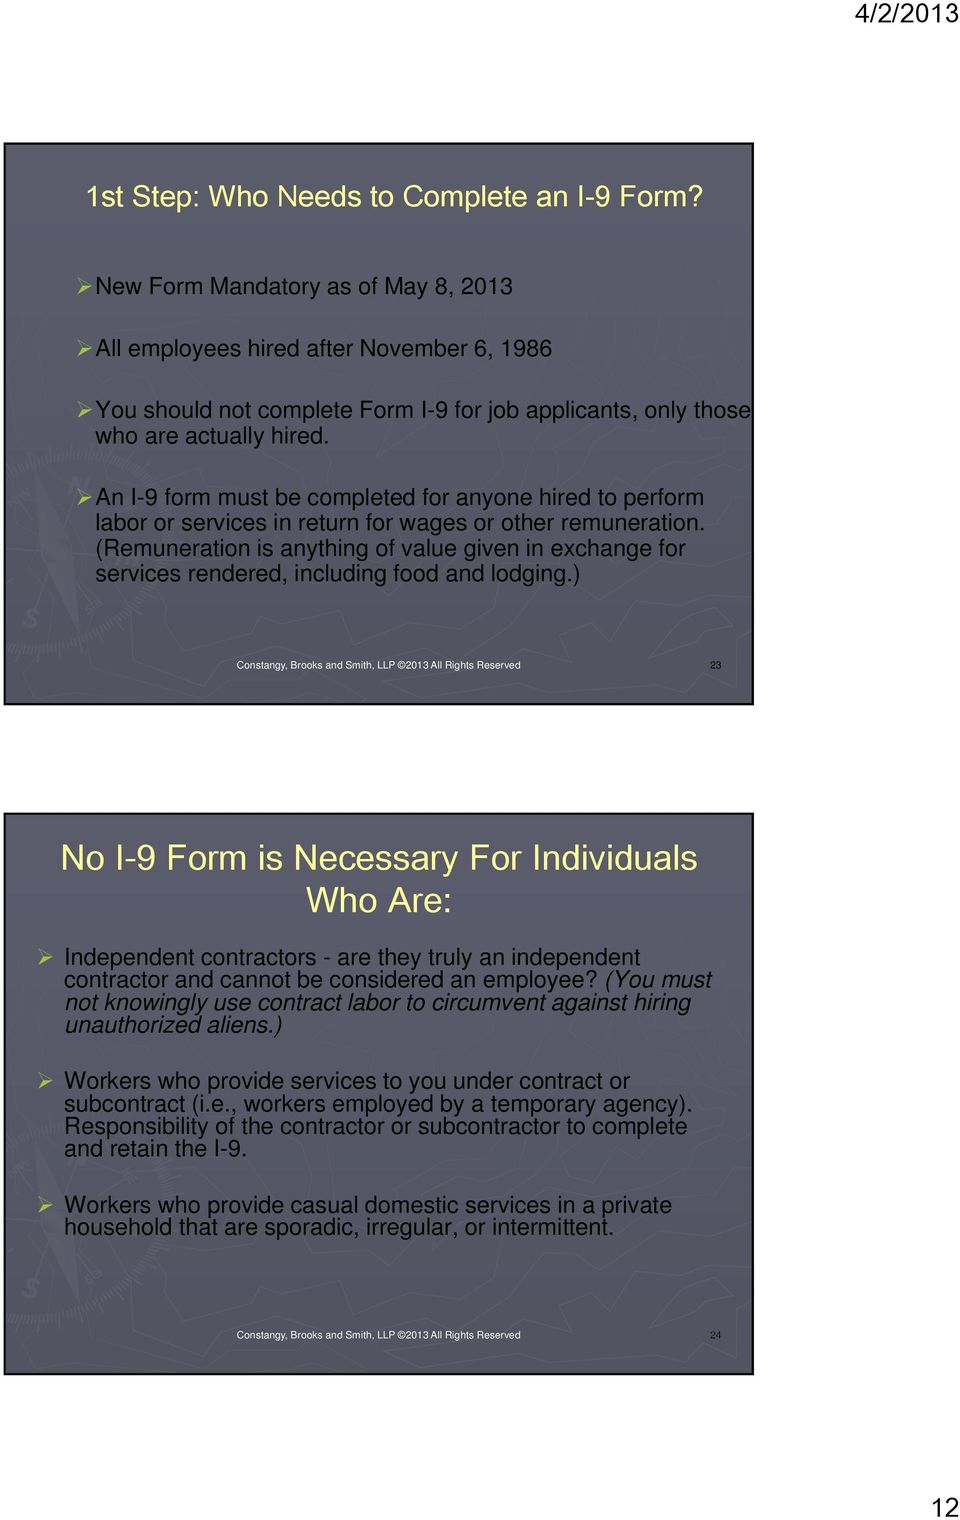 An I-9 form must be completed for anyone hired to perform labor or services in return for wages or other remuneration.